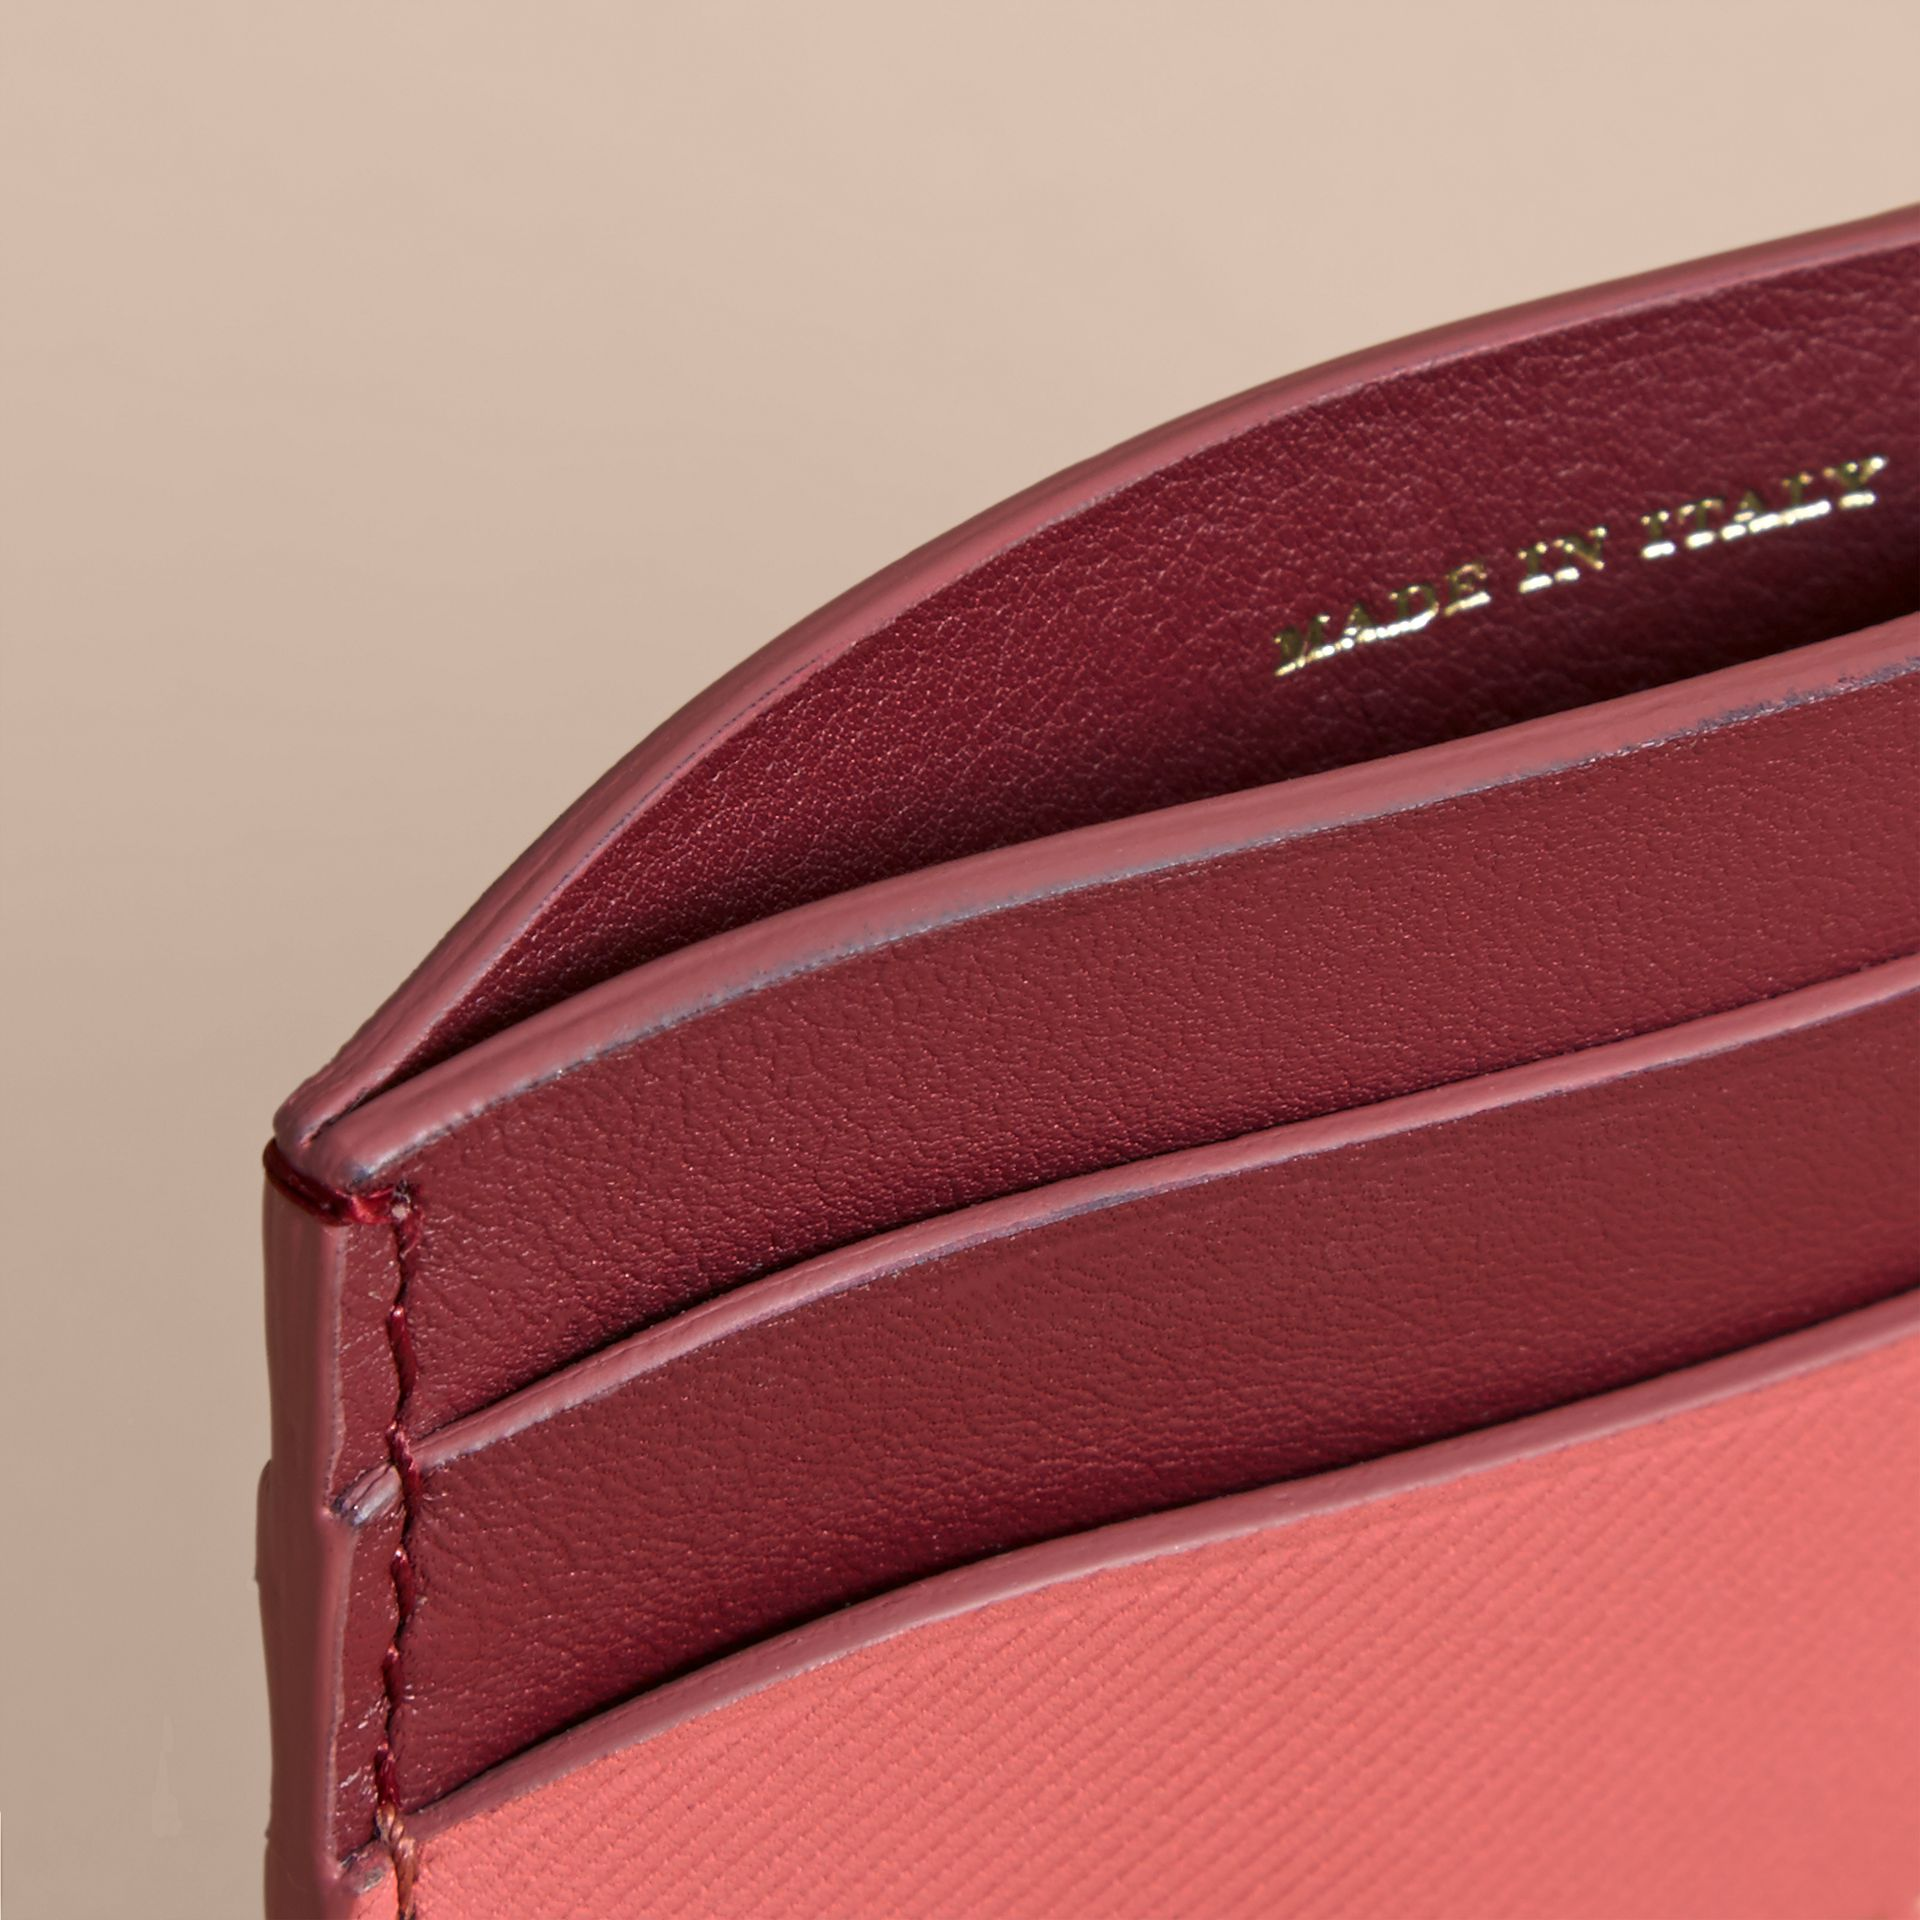 Two-tone Trench Leather Card Case in Blossom Pink/ Antique Red - Women | Burberry Singapore - gallery image 4